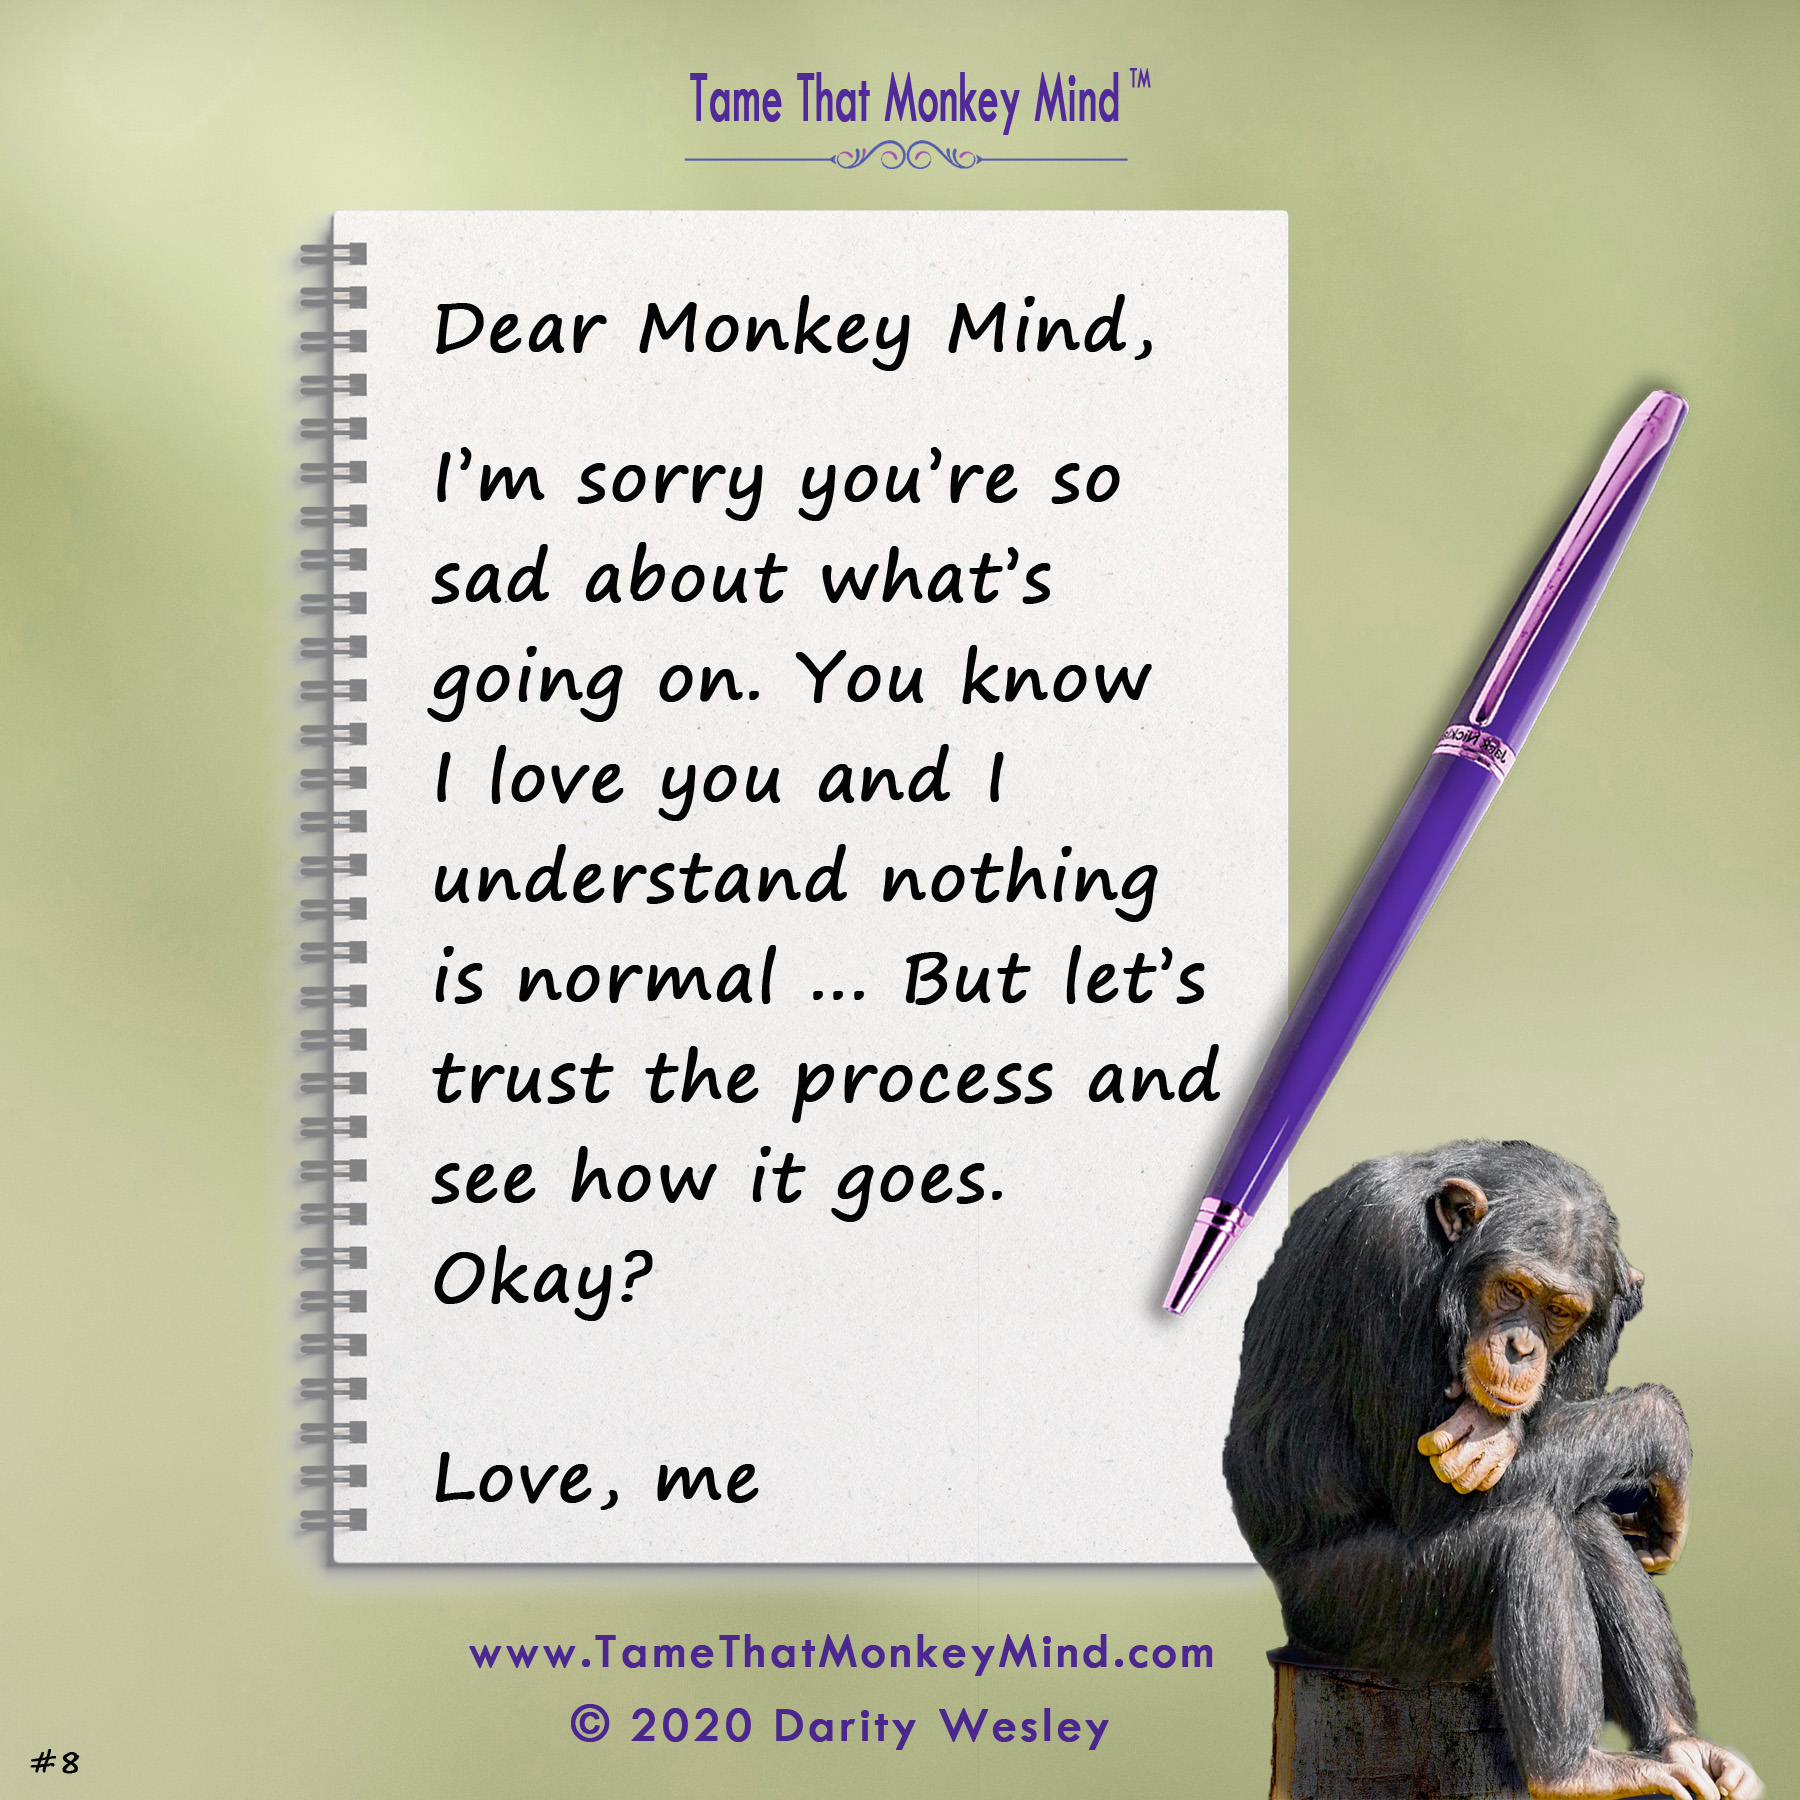 Dear Monkey Mind #4